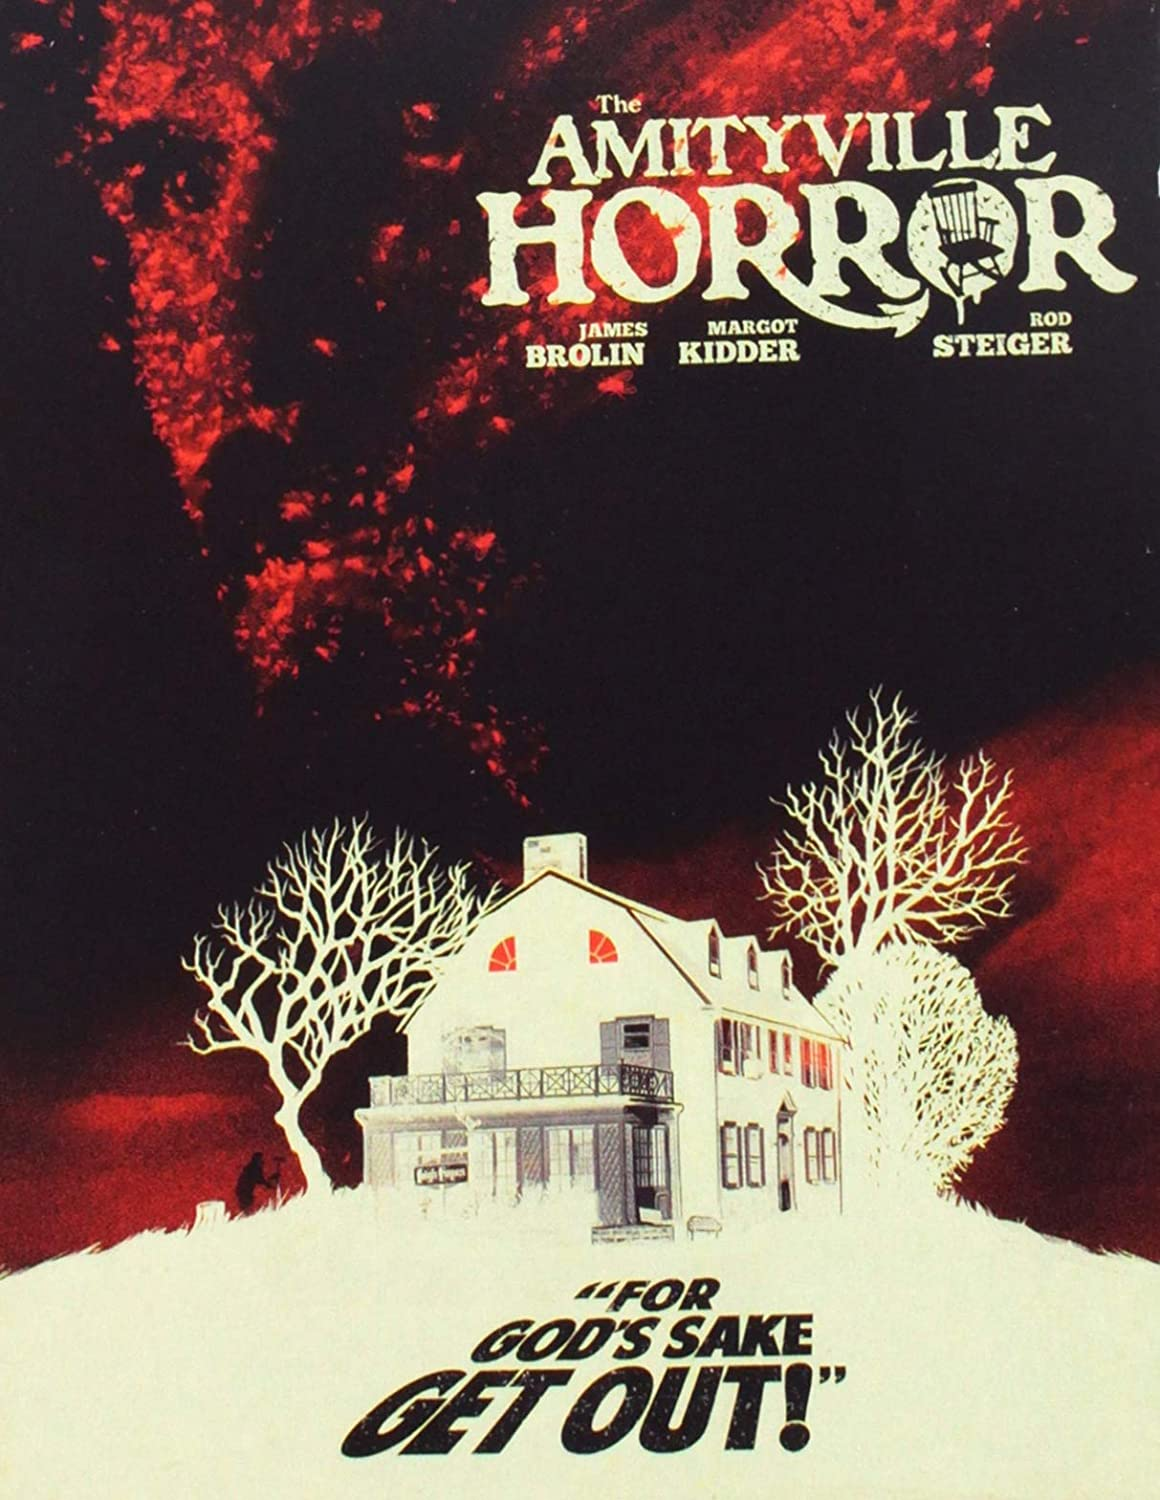 The Amityville Horror (1979) image cover